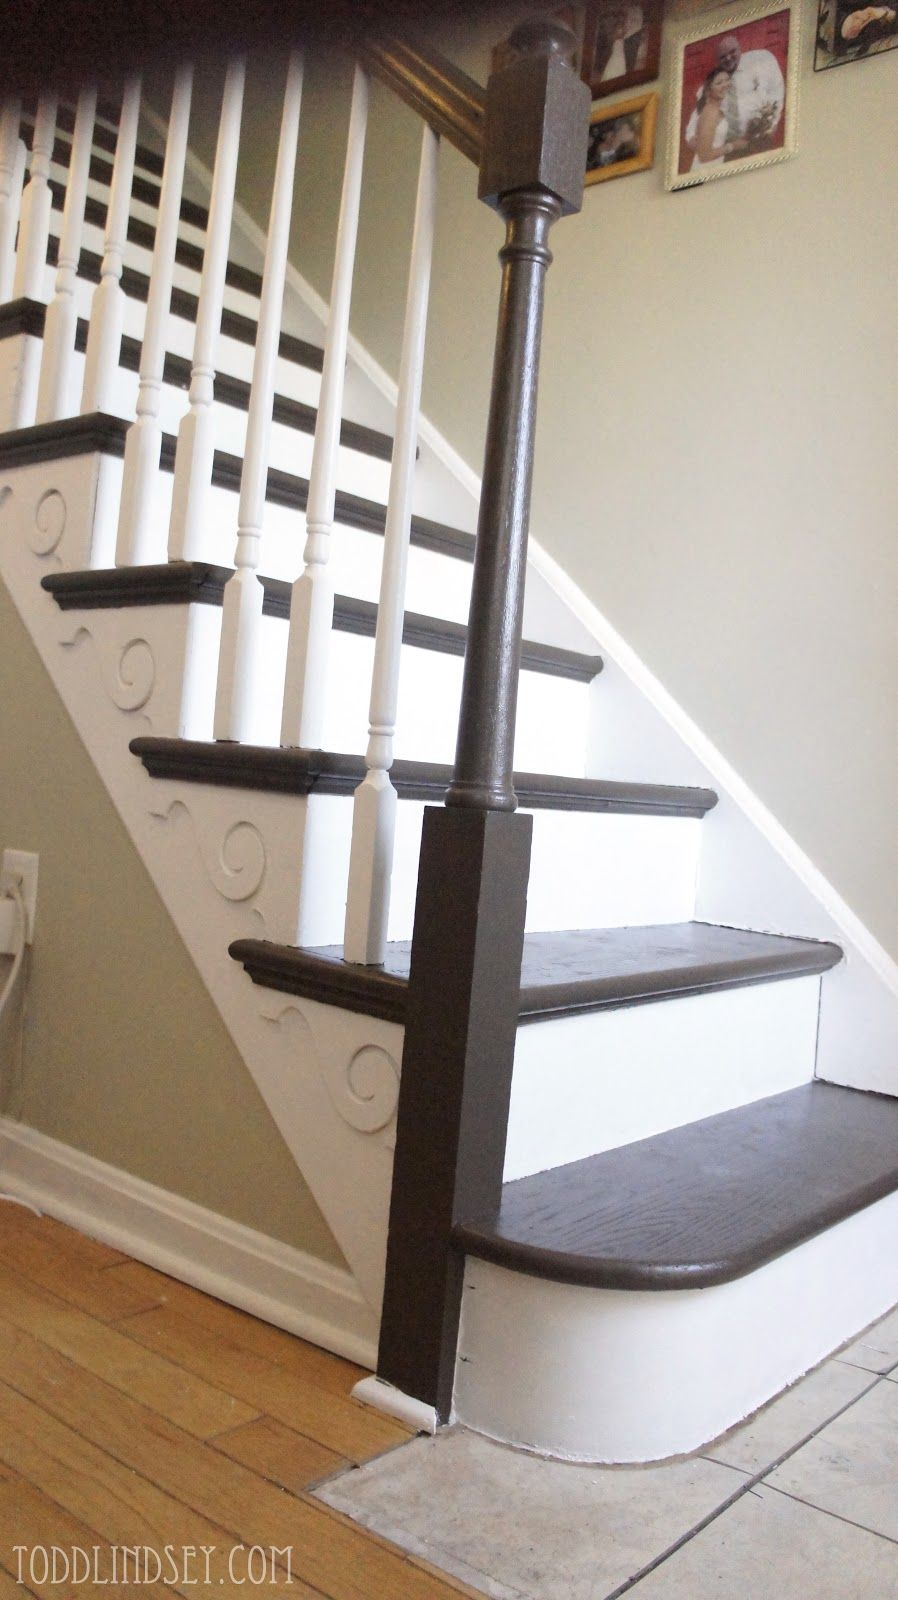 Swiss Chocolate Brown Paint From Valspar On Stair Treads.....I Like